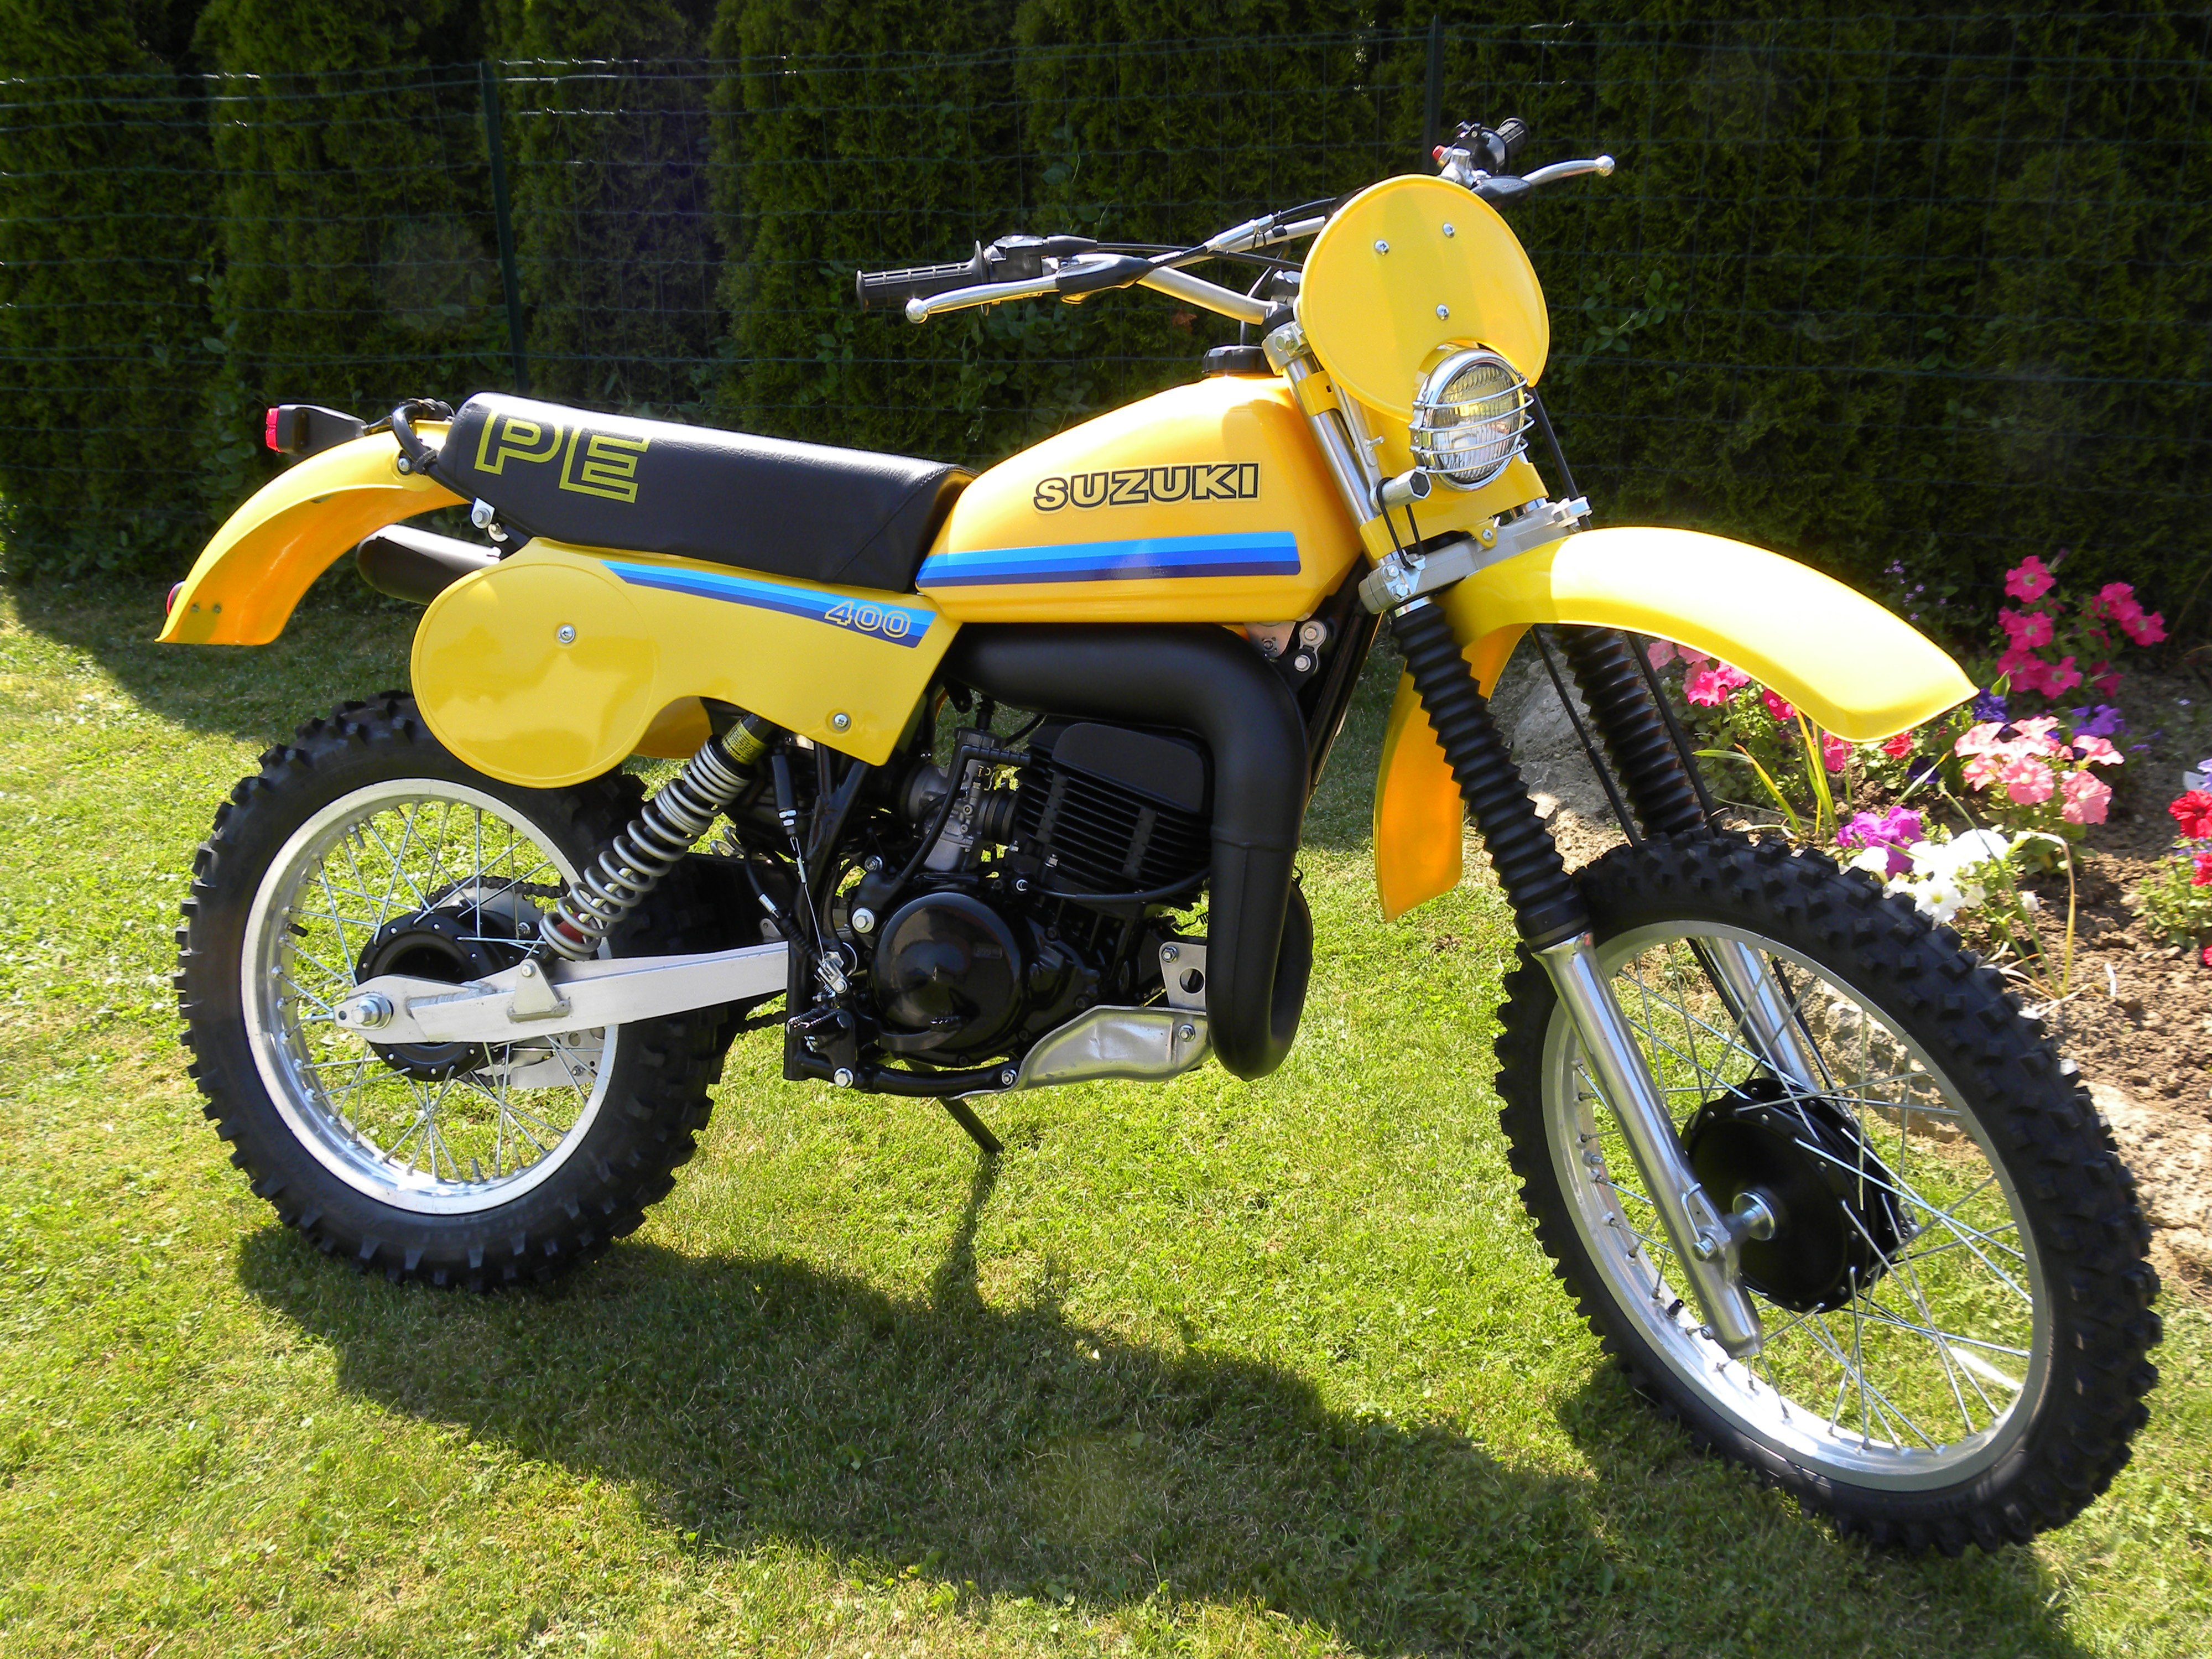 List of Suzuki motorcycles - The complete information and online